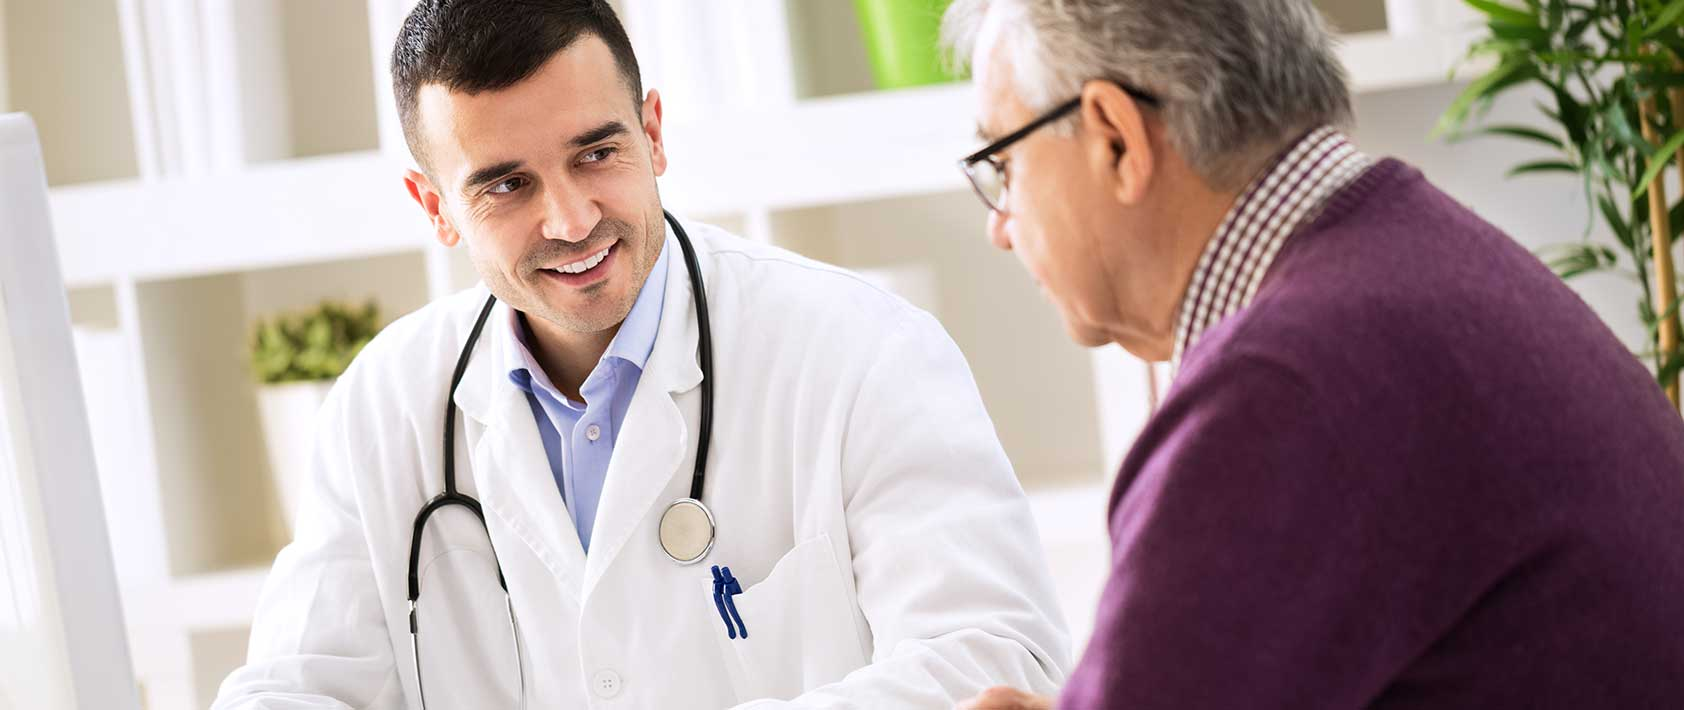 Cape Cod Healthcare - Urological Services